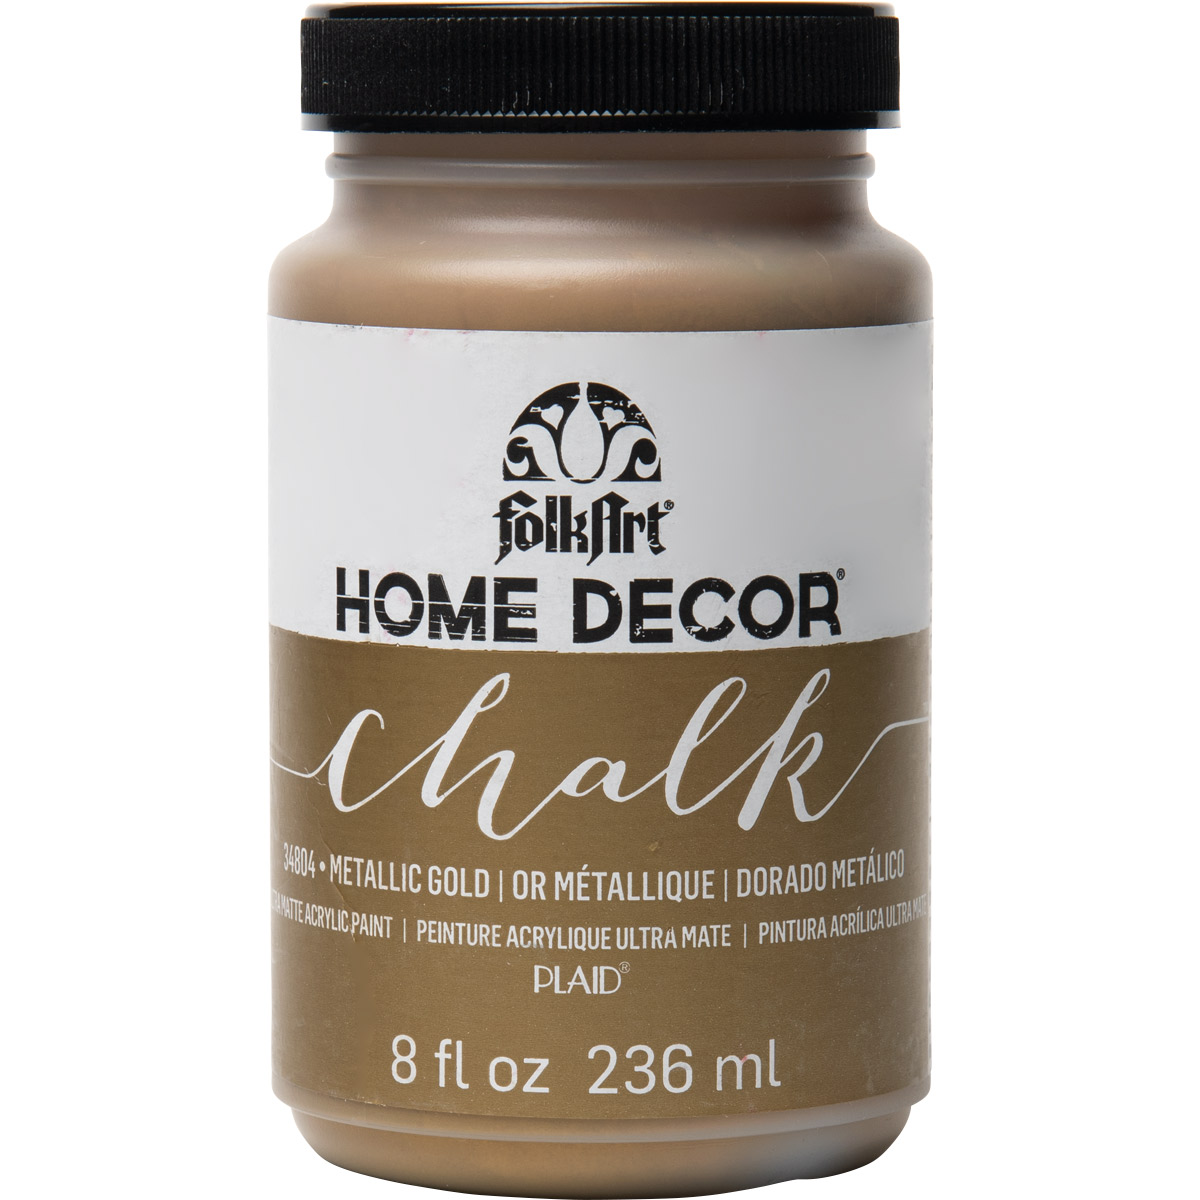 FolkArt ® Home Decor™ Chalk - Metallic Gold, 8 oz. - 34804